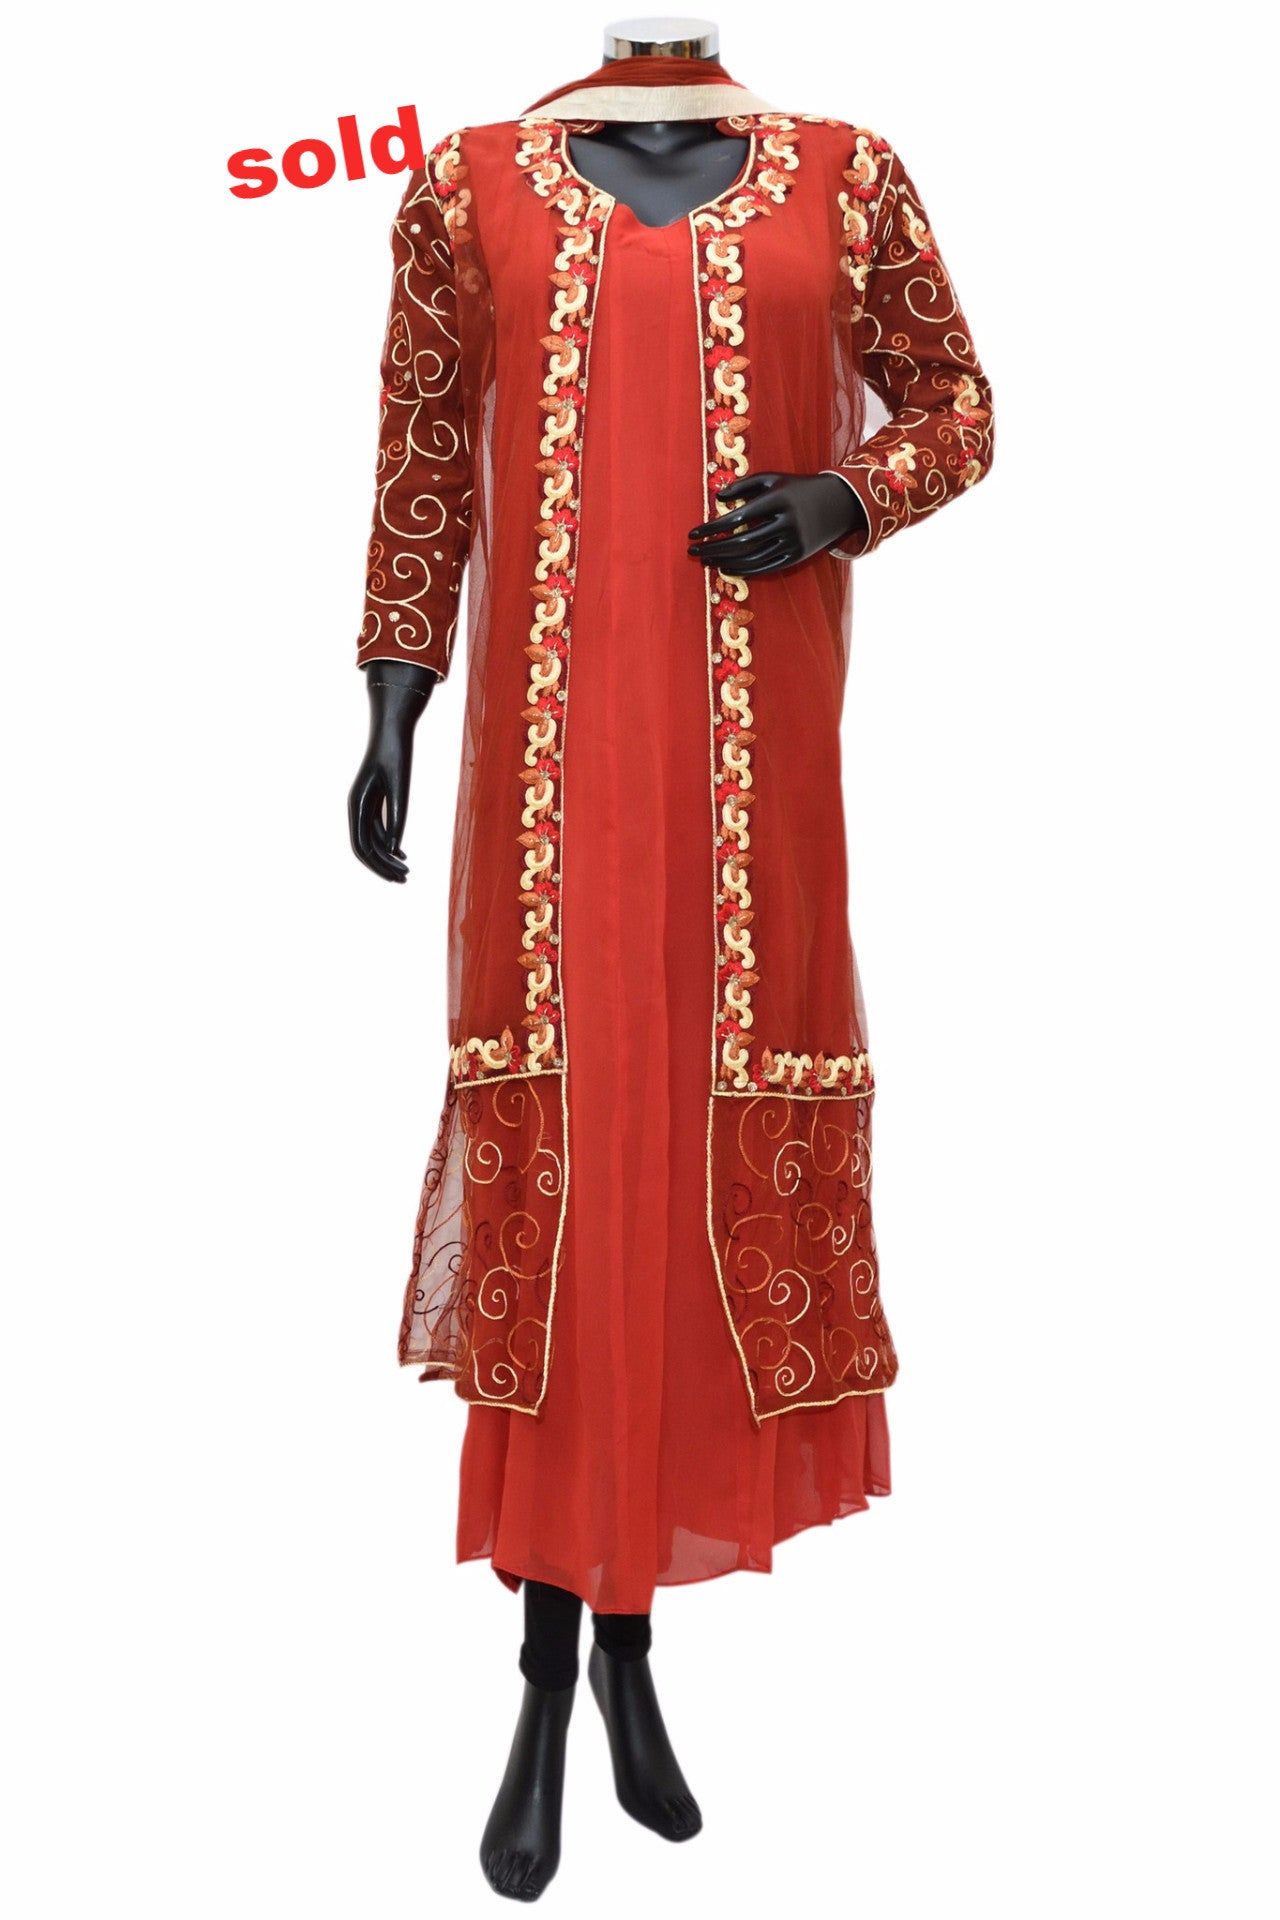 A lovely red embroidered dress# fdn0294